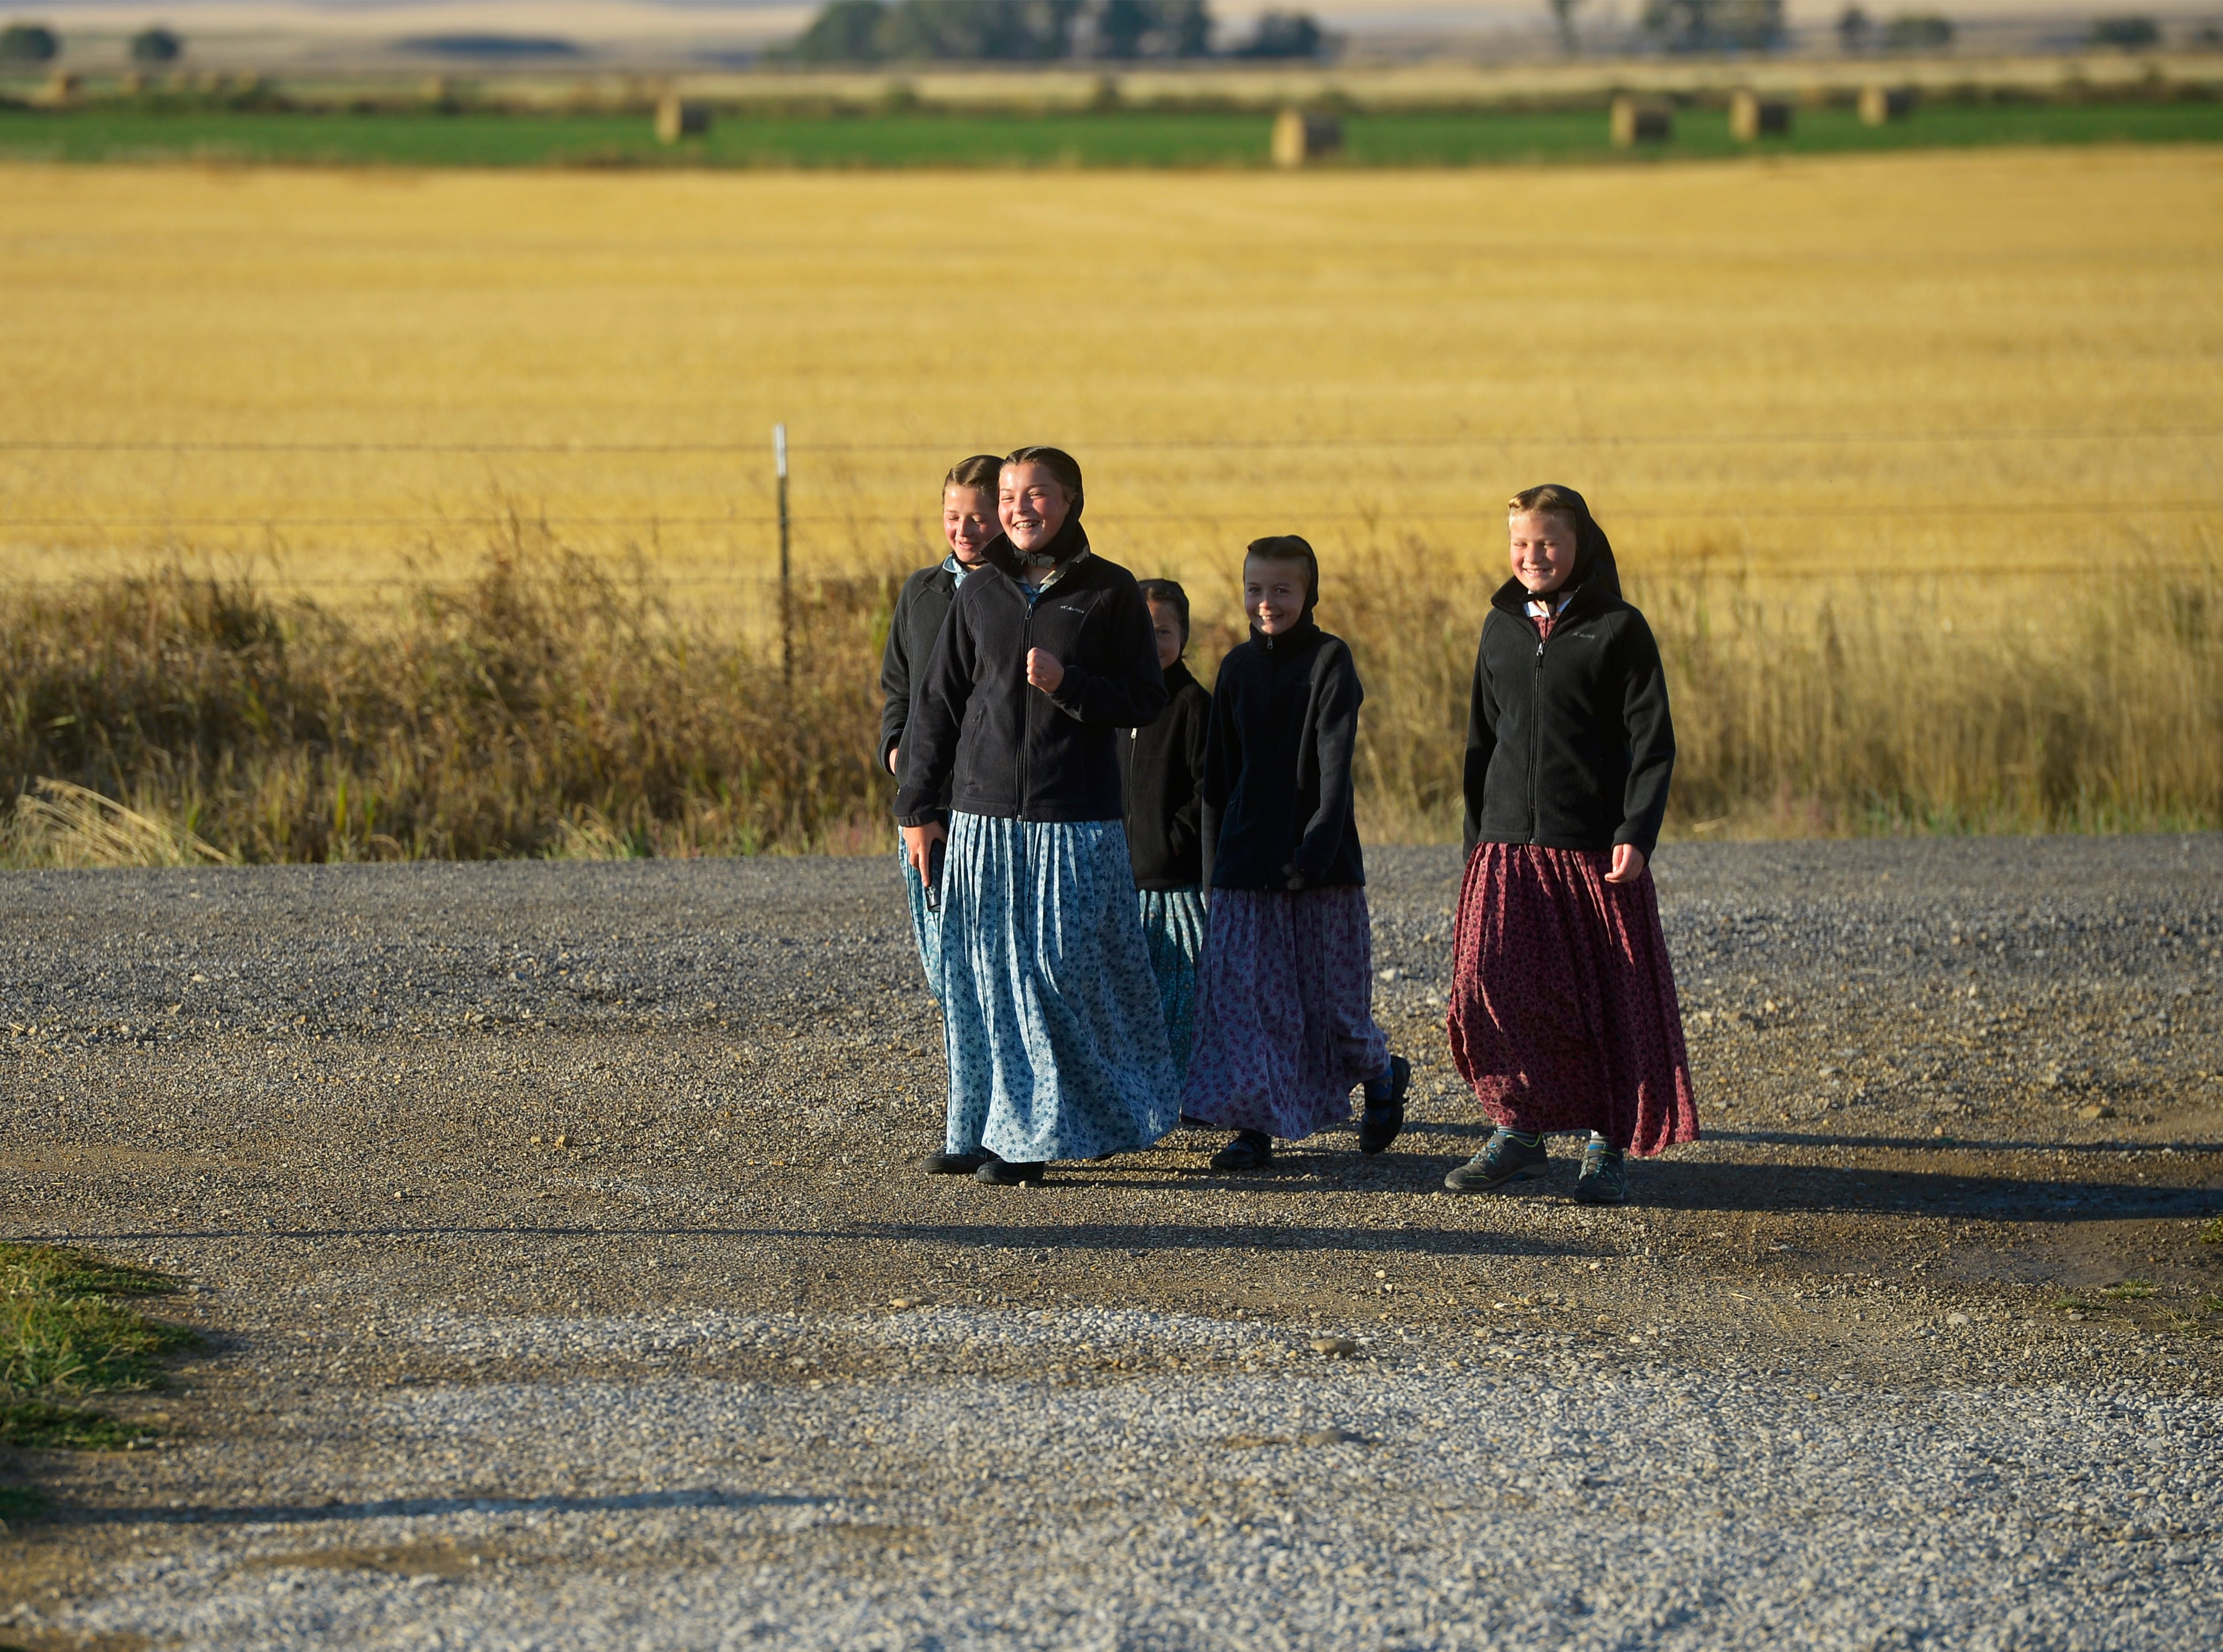 8:20 am: Traci Manseau's students arrive at school, a short walk down the gravel road from their home on the Deerfield Hutterite Colony, Monday, Sept. 17, 2018.  Manseau is a teaching veteran of 23 years and she has spent her entire career teaching in one room rural school houses.  She is currently teaching 15 students across seven different grade levels at the Deerfield Hutterite Colony in North Central Montana's Fergus County.